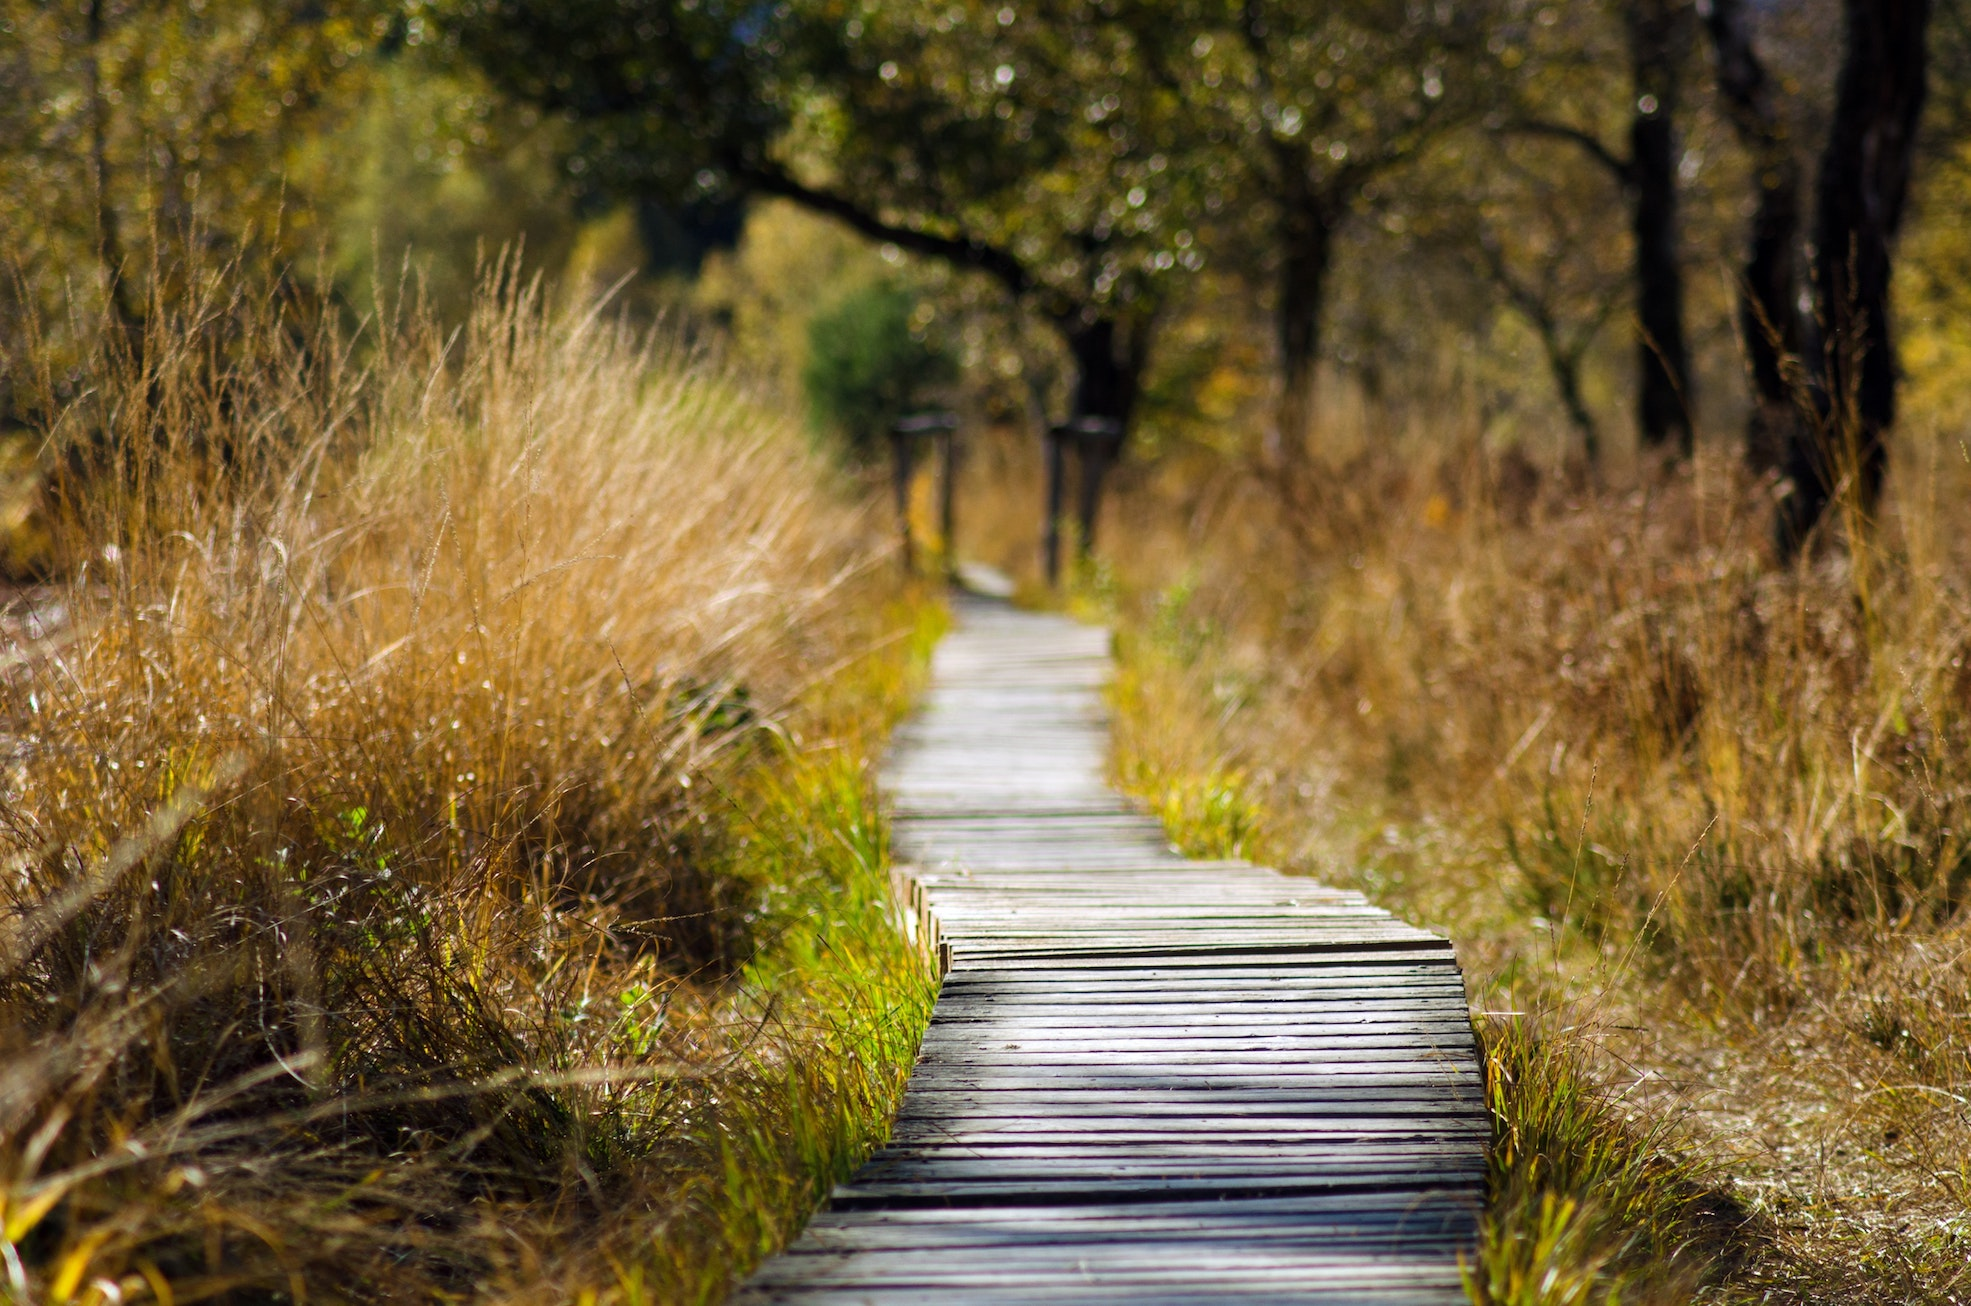 adventure-boardwalk-countryside-289327-pexels